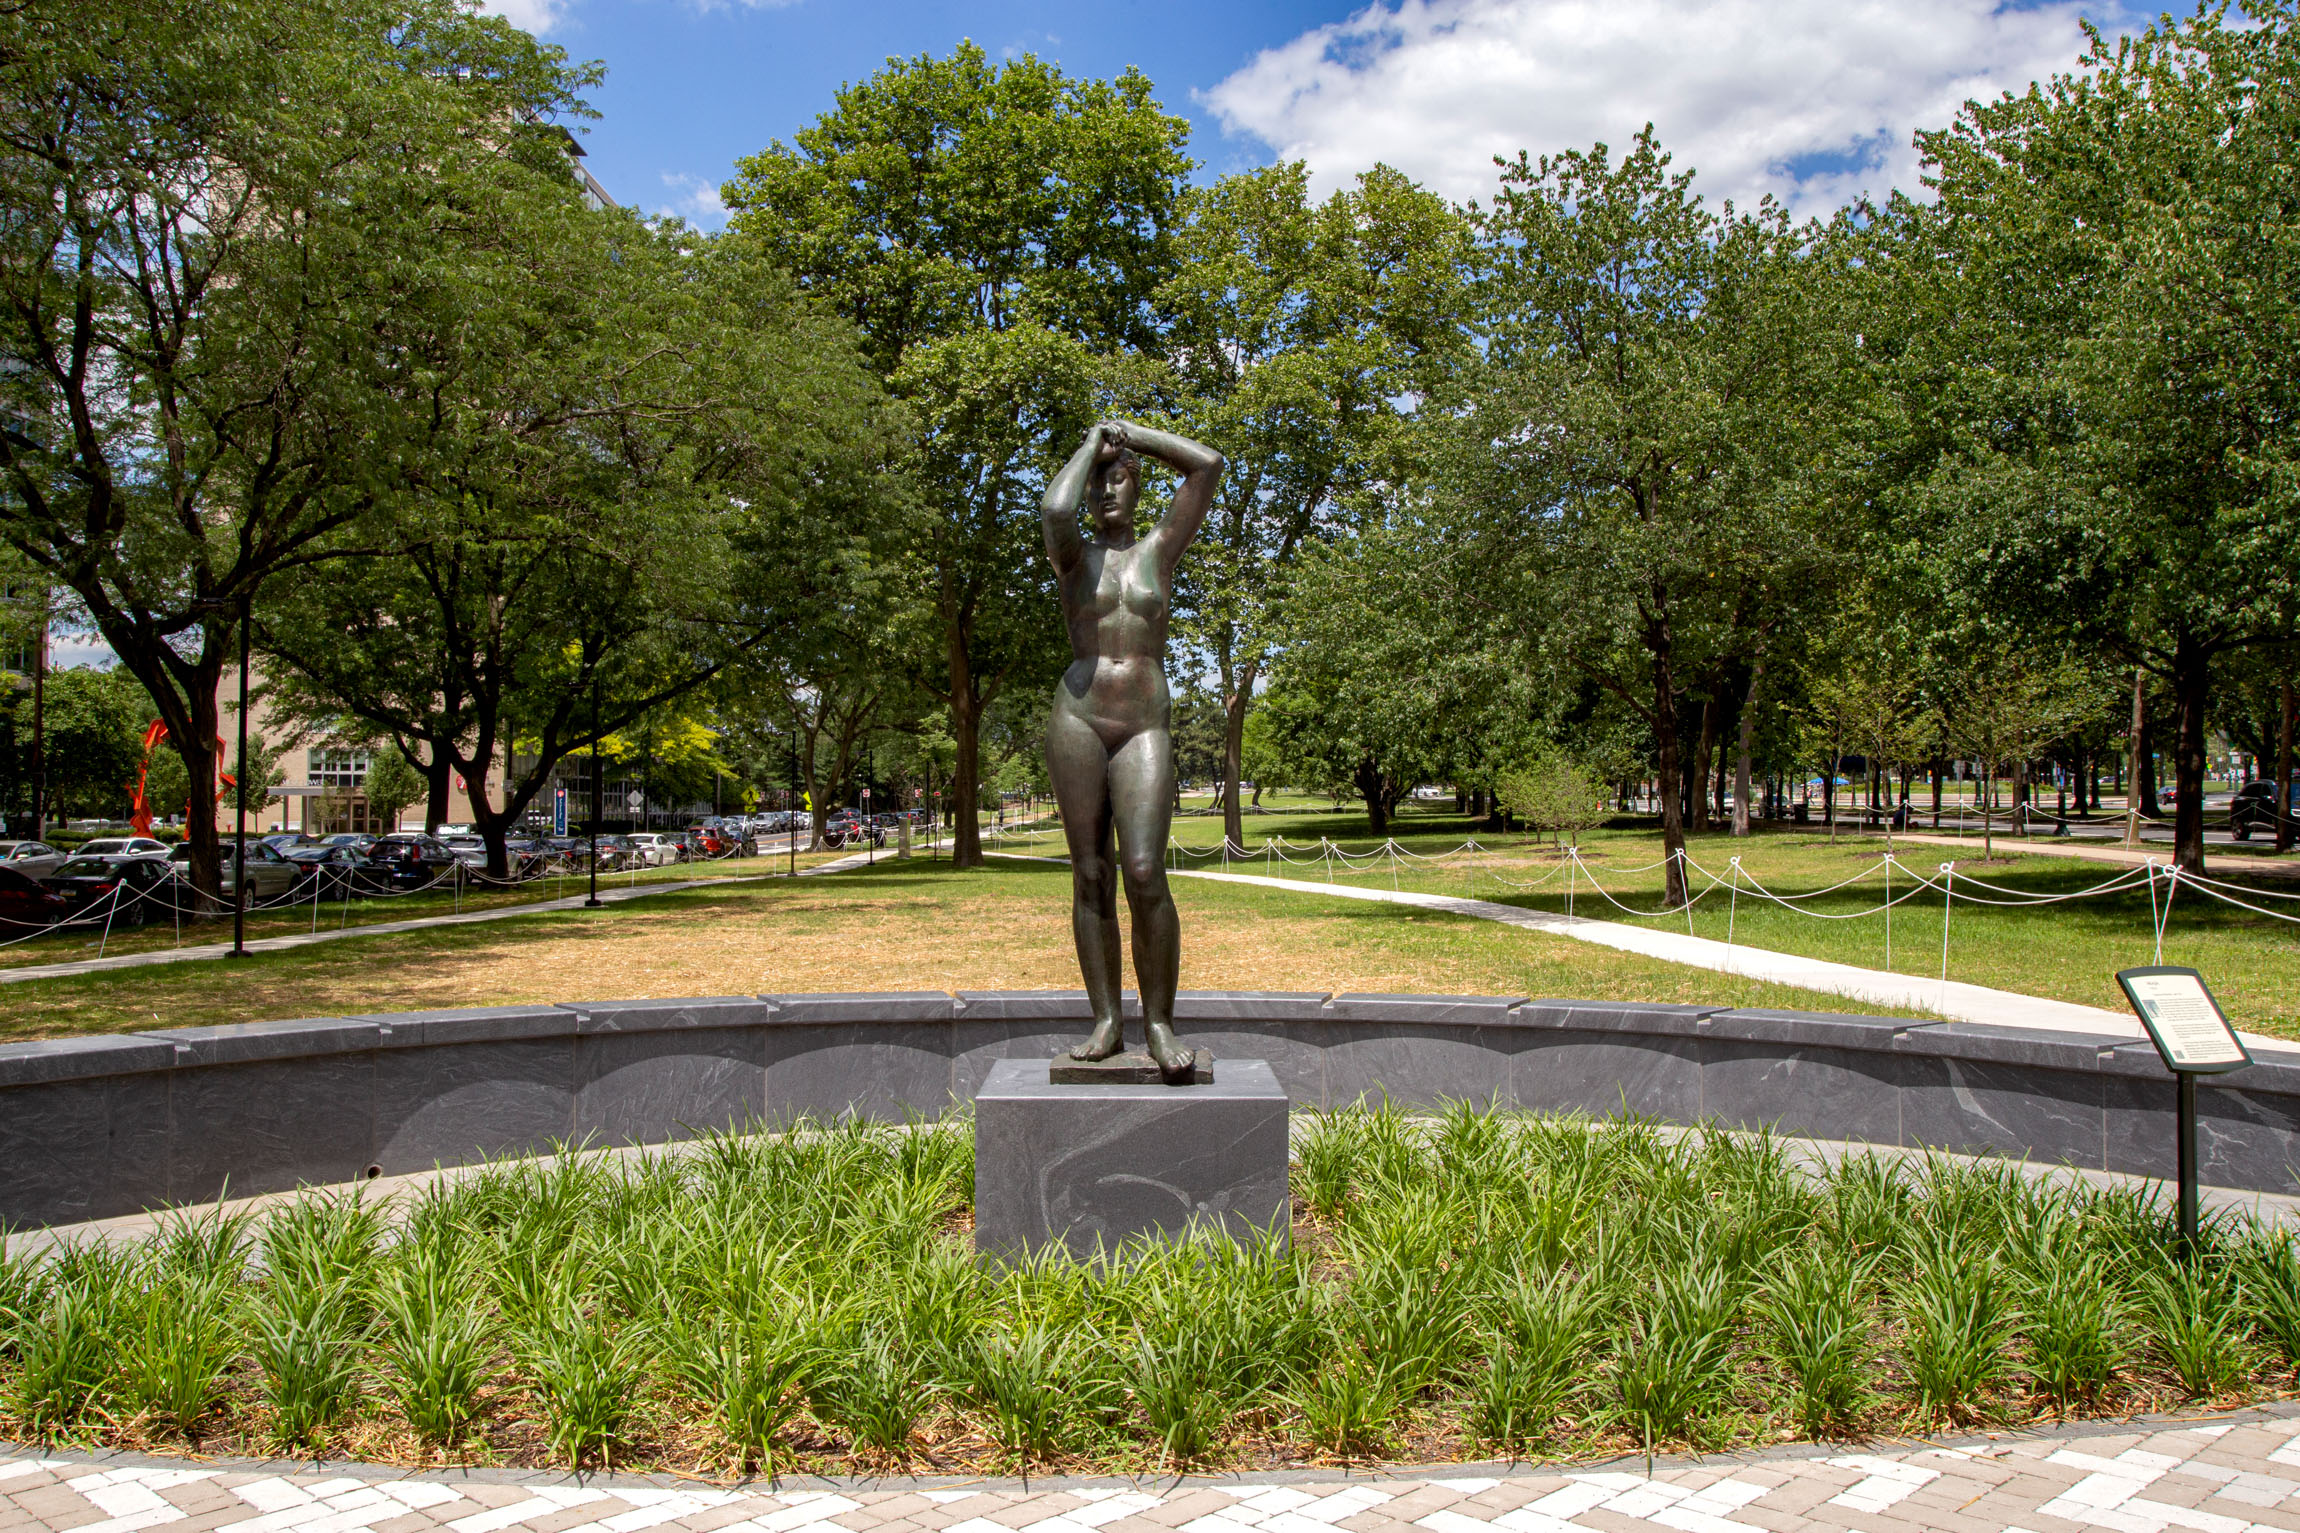 """The Gerhard Marcks """"Maja"""" sculpture –figurative bronze nude female with arms overhead – in the new """"Maja Park"""" on the Parkway on a sunny June day. The sculpture stands tall on a gray granite base, surrounded by green Liriope plants."""